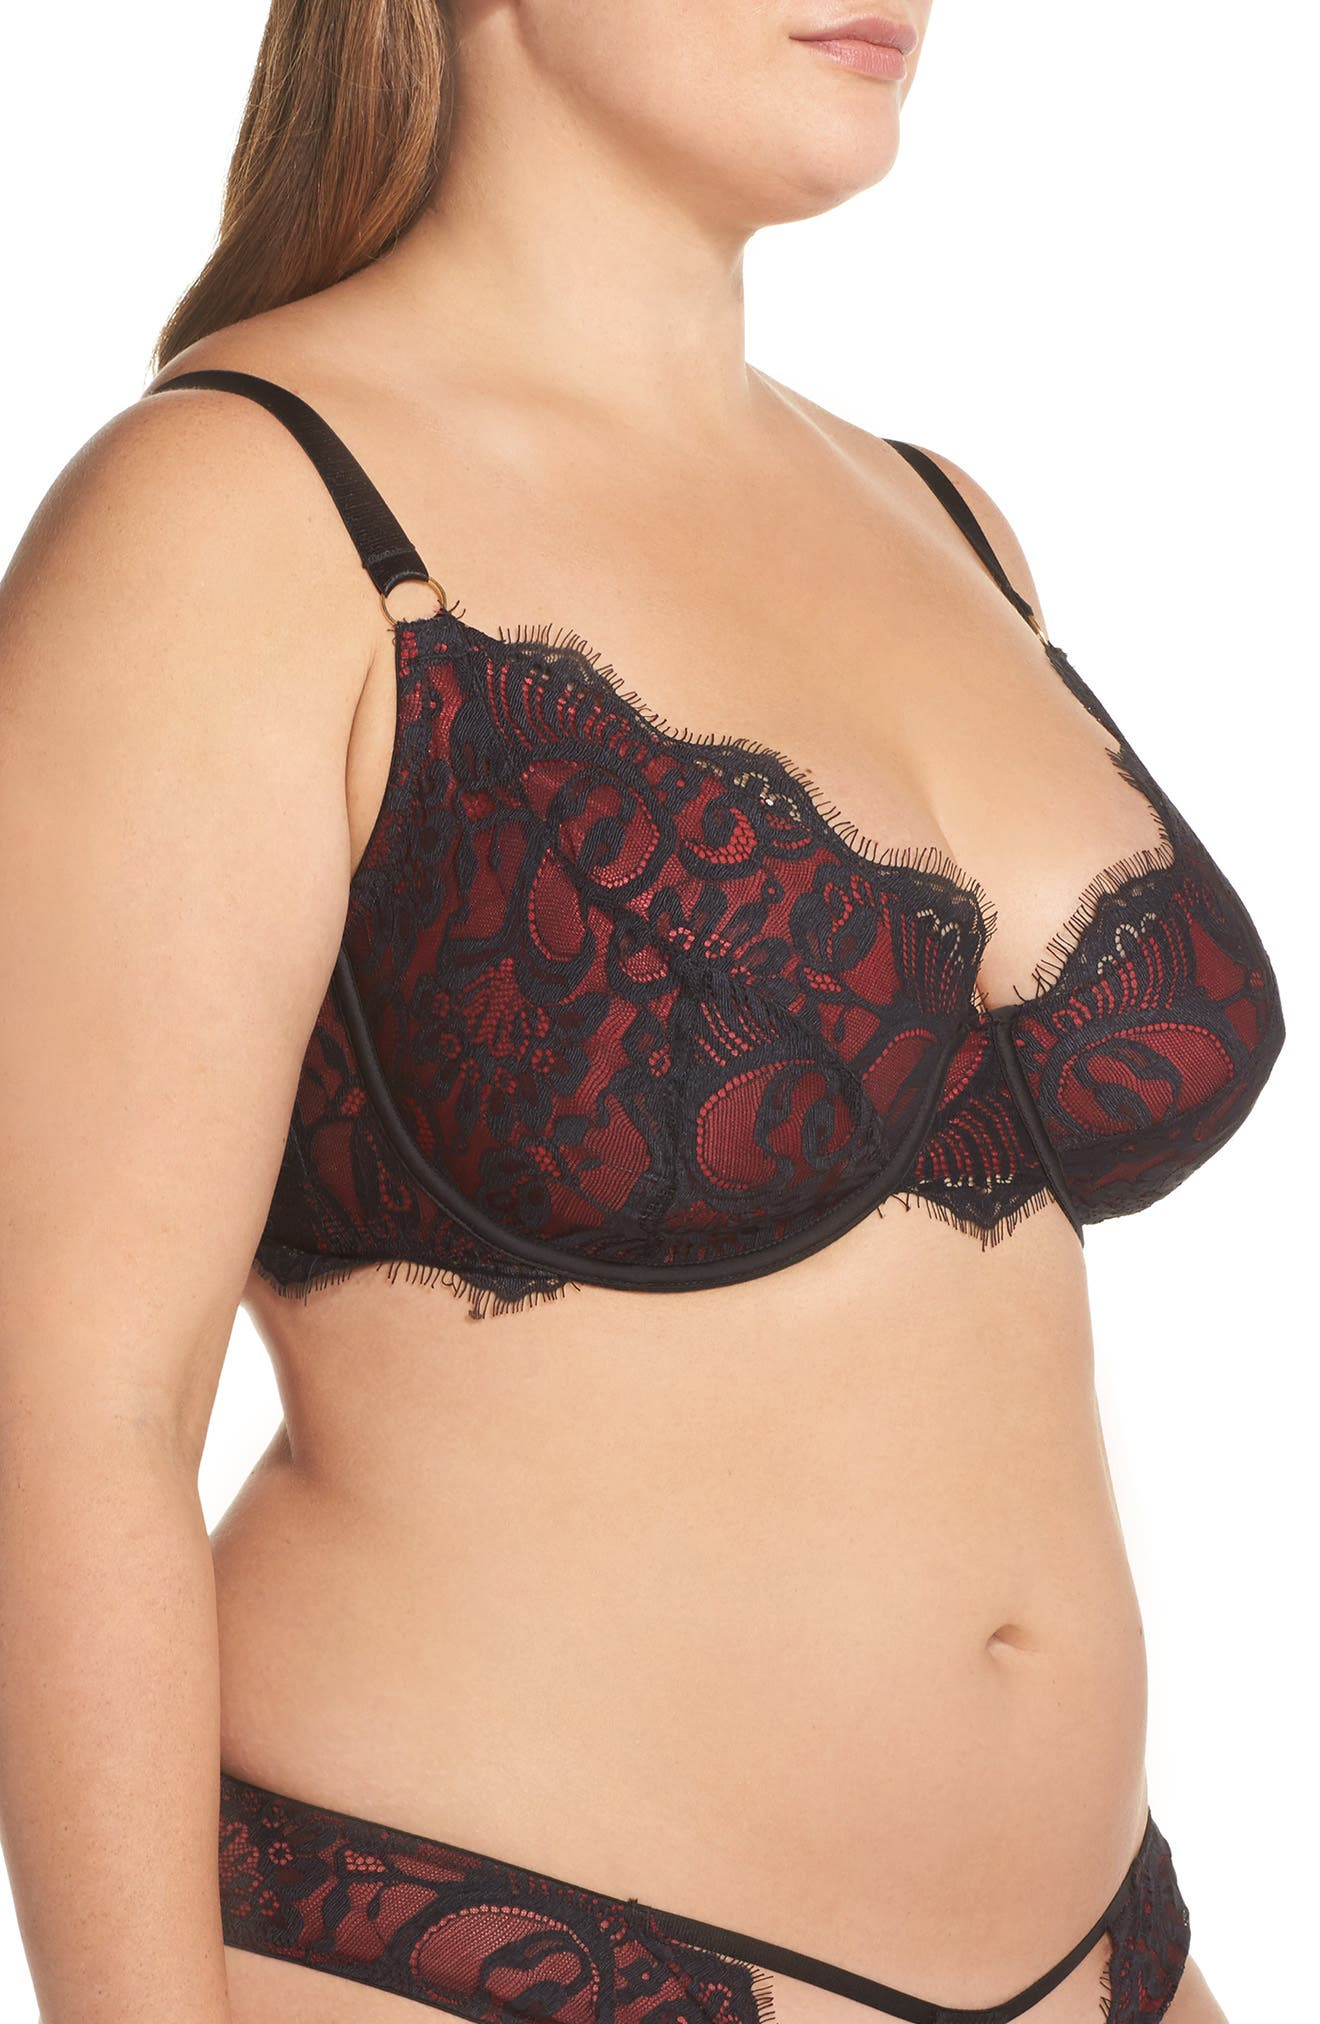 Alternate Image 3  - Playful Promises Bailey Curve Embroidered Underwire Bra (Plus Size)